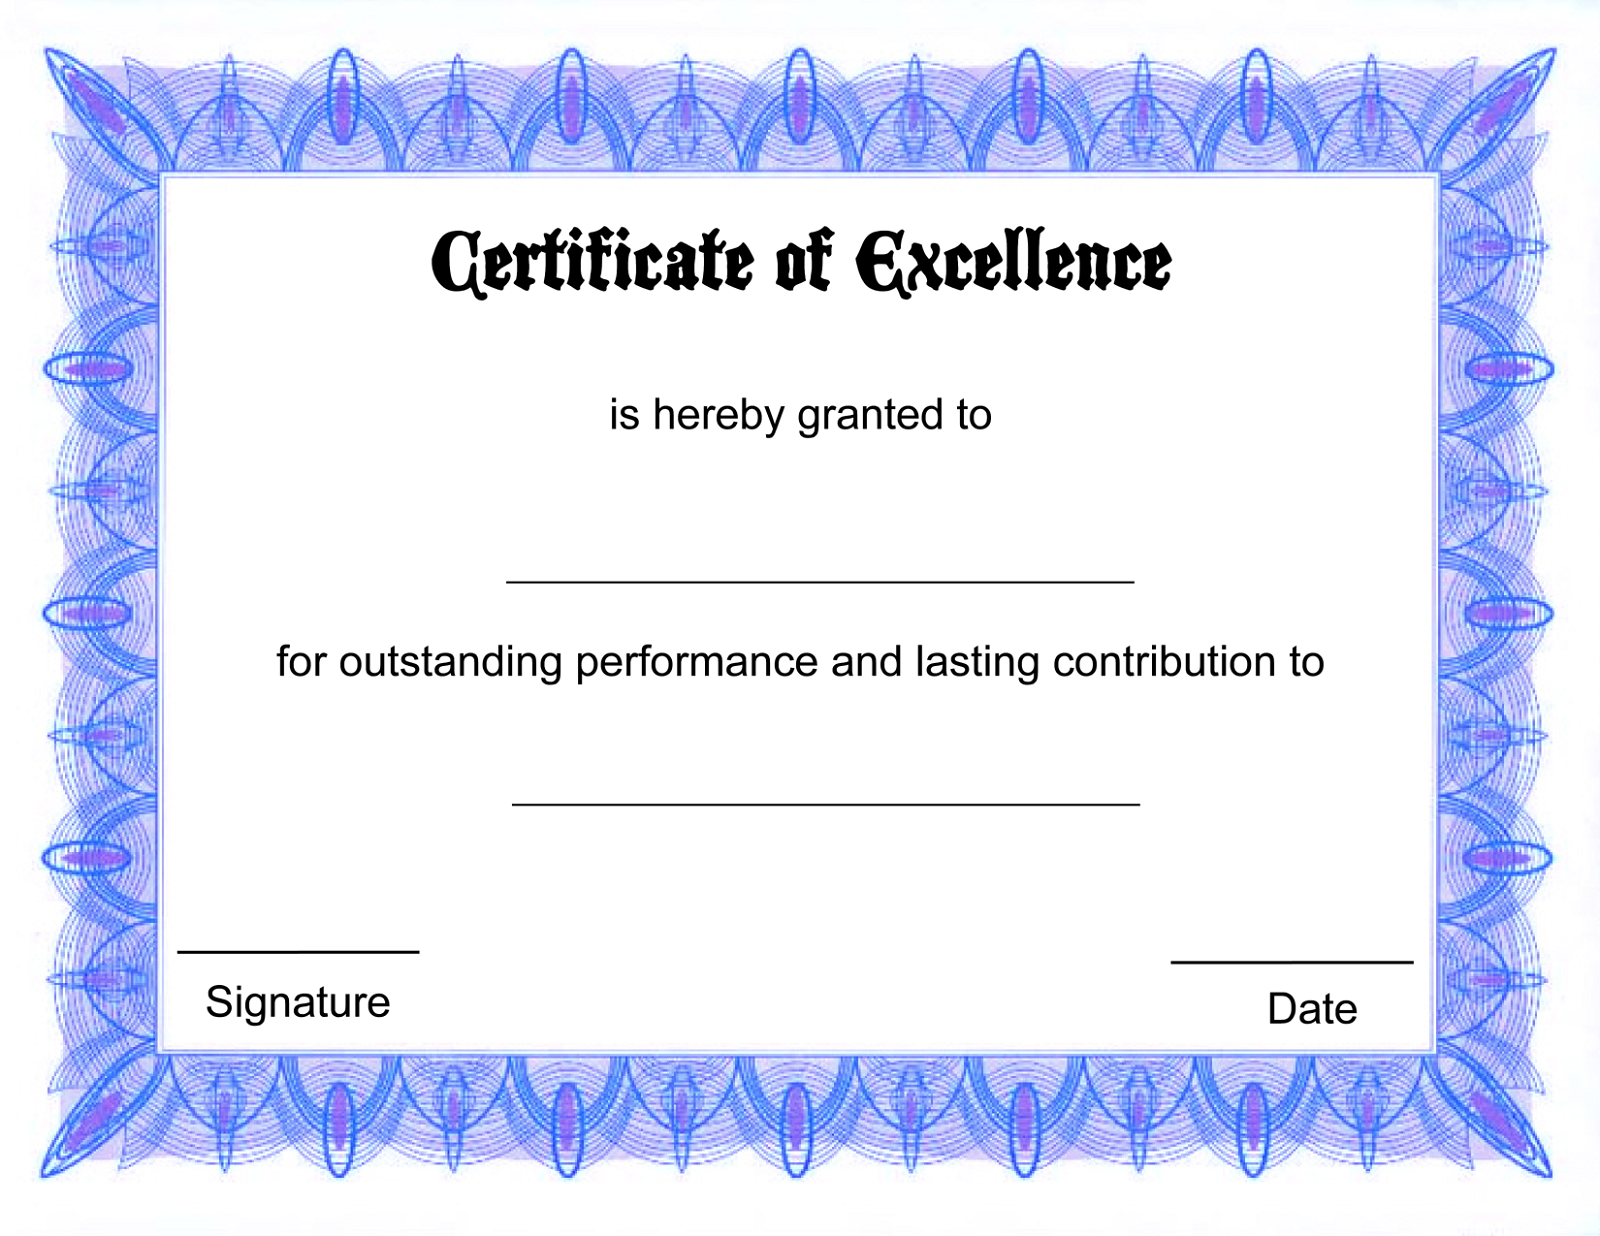 Blank certificate templates to print activity shelter for Running certificates templates free